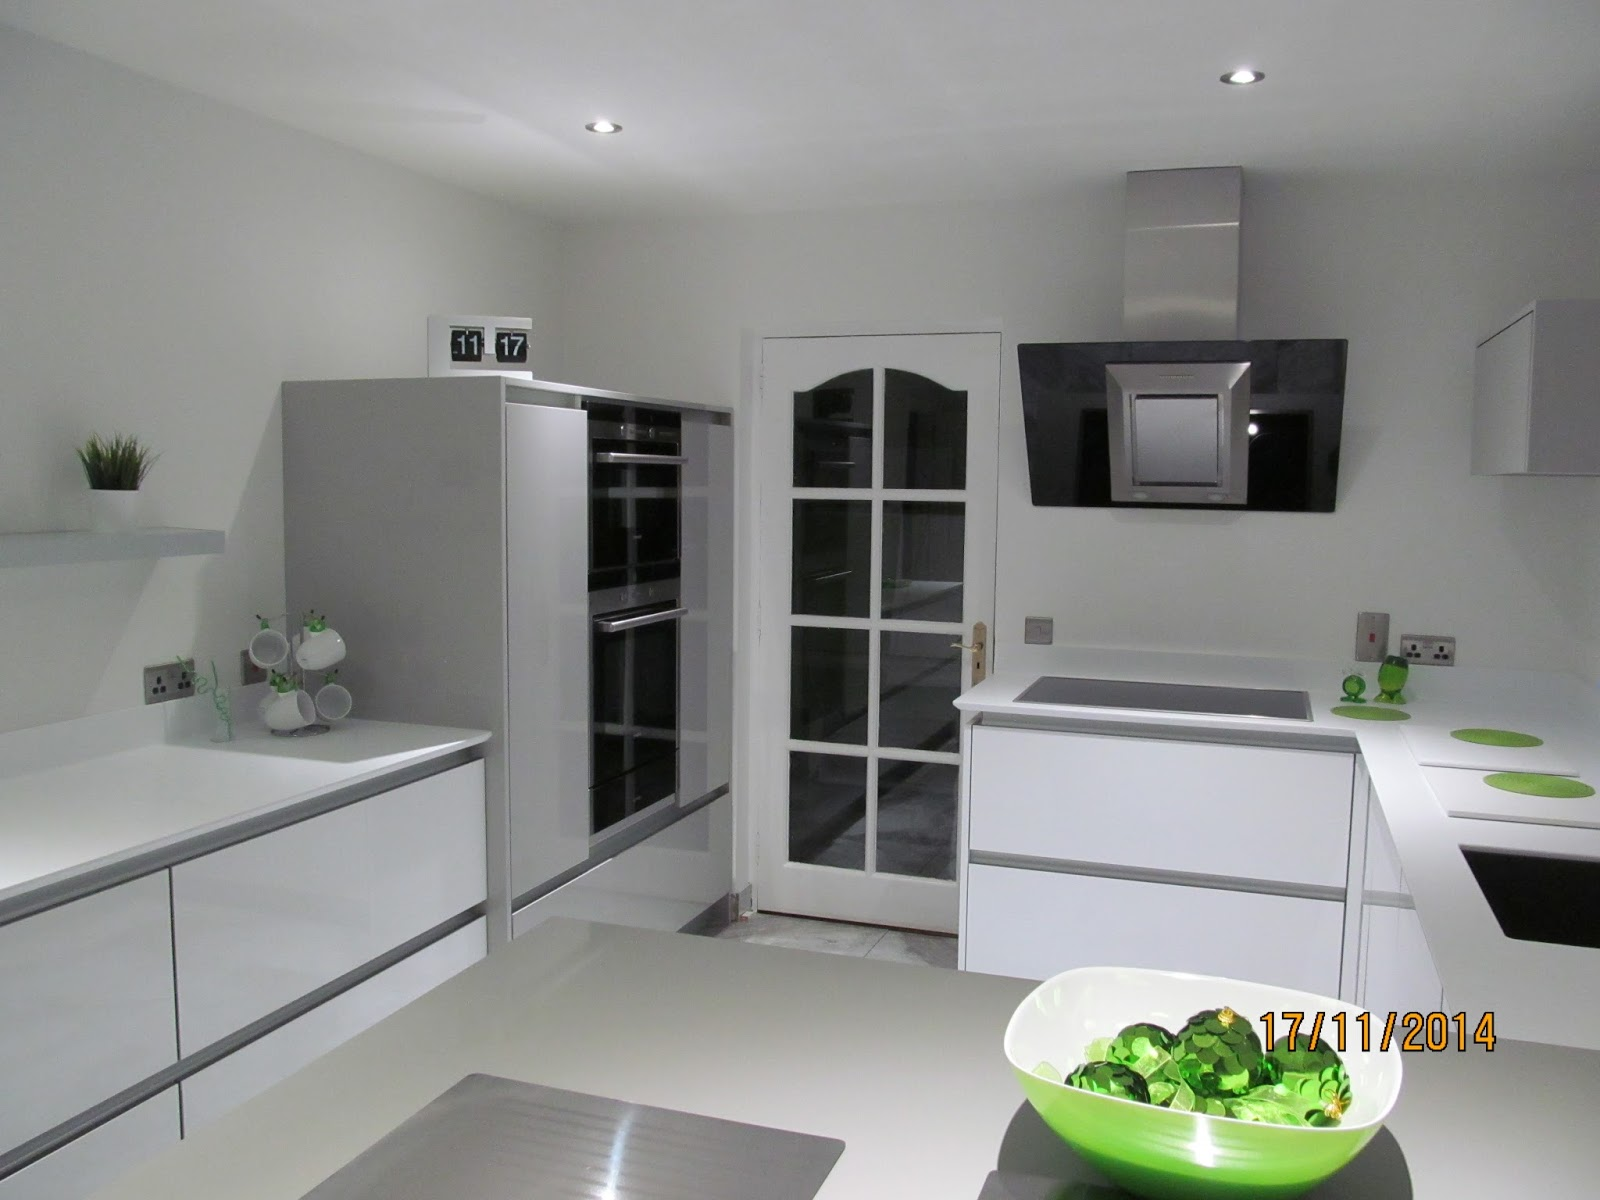 Kitchens direct ni stunning county down kitchen for Kitchens direct